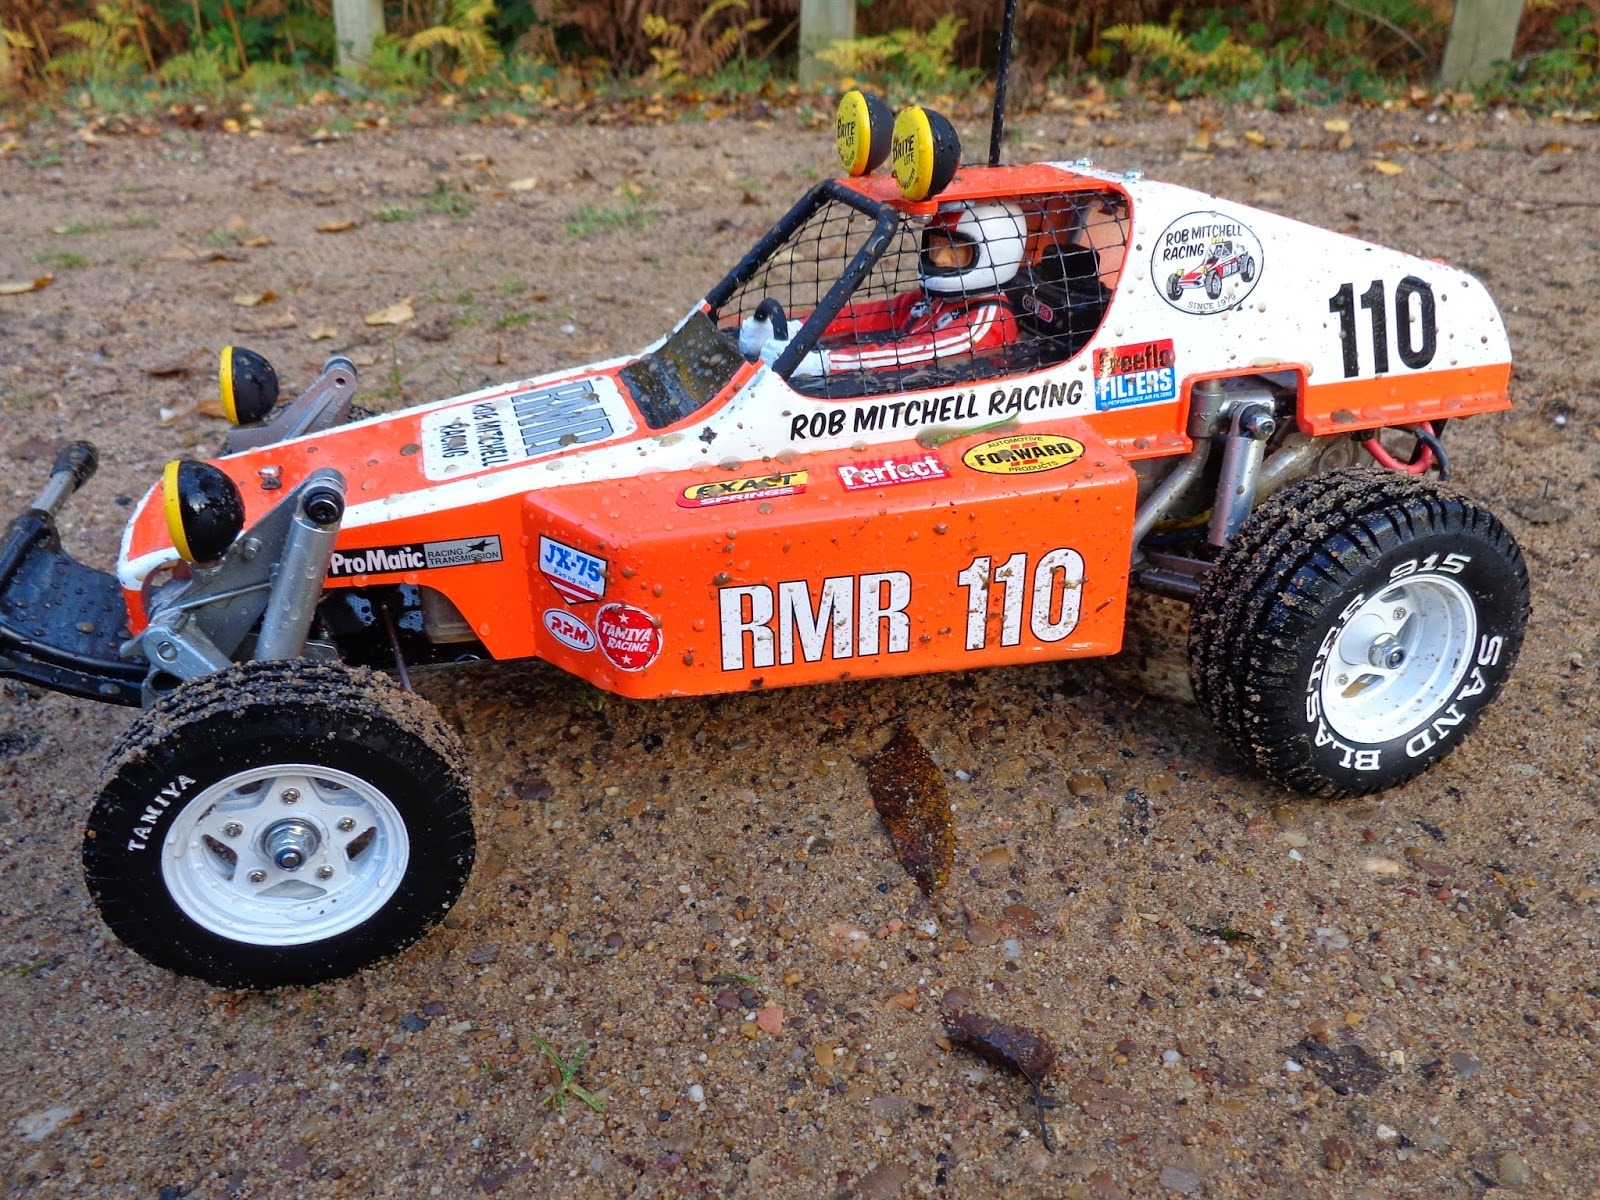 tamiya sand scorcher rough rider special racing buggy. Black Bedroom Furniture Sets. Home Design Ideas